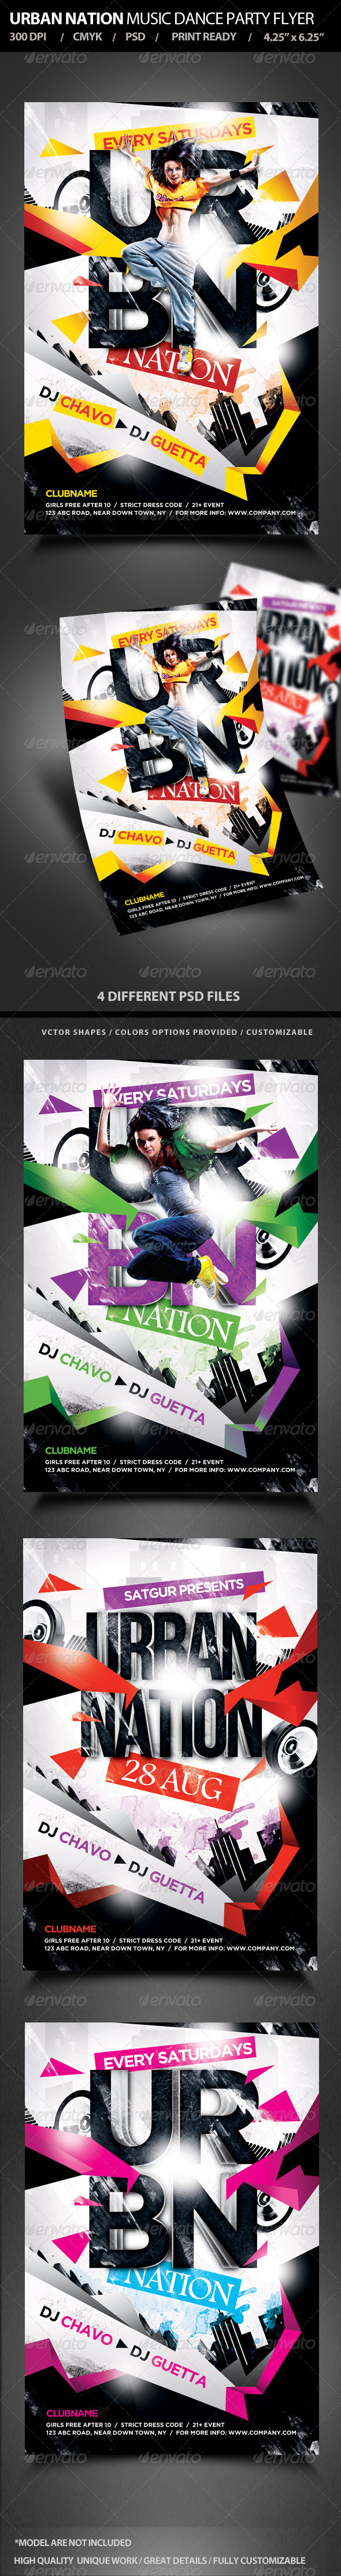 Urban Nation Music Dance Party Flyer - Flyers Print Templates